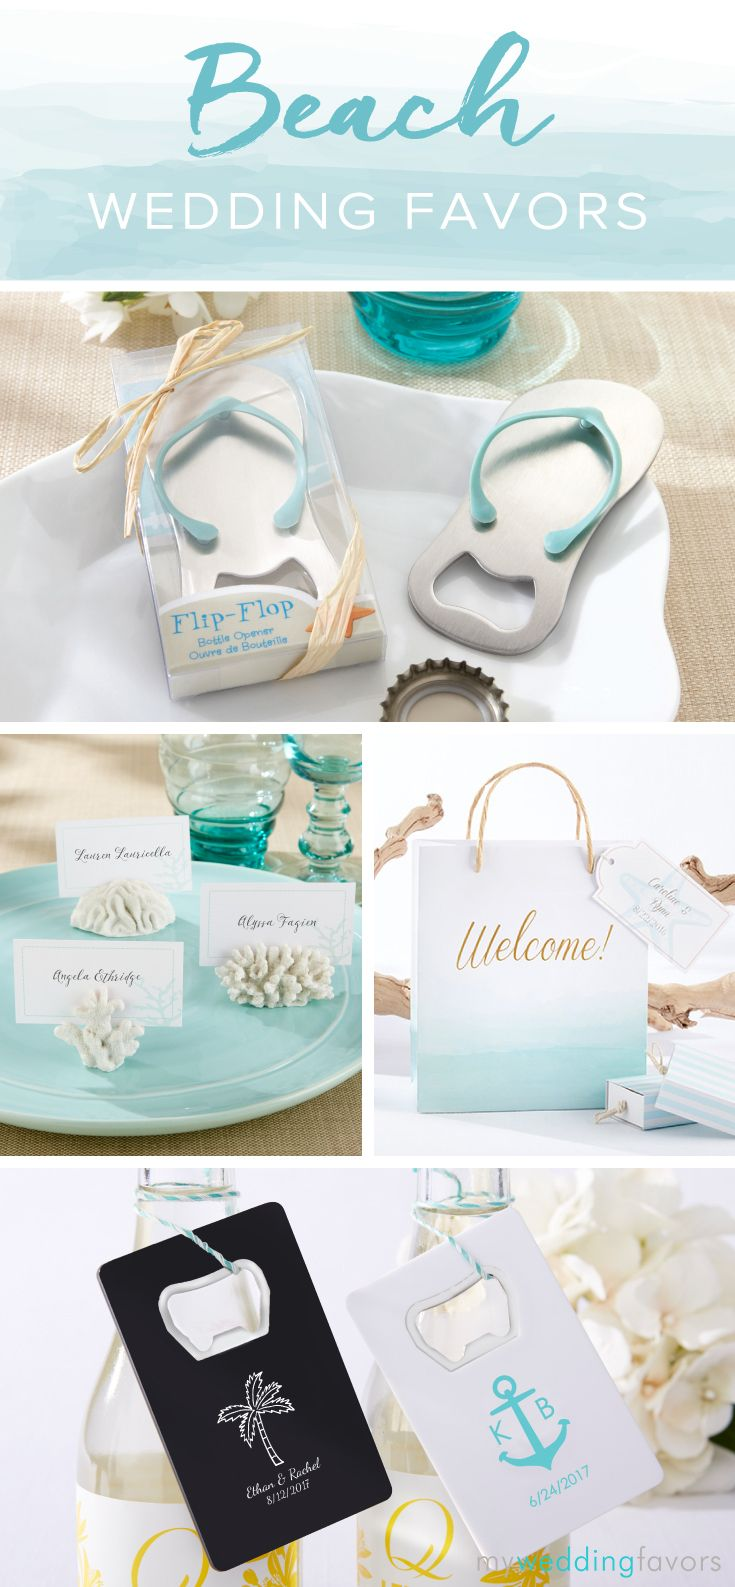 Your guests will never your special day with these